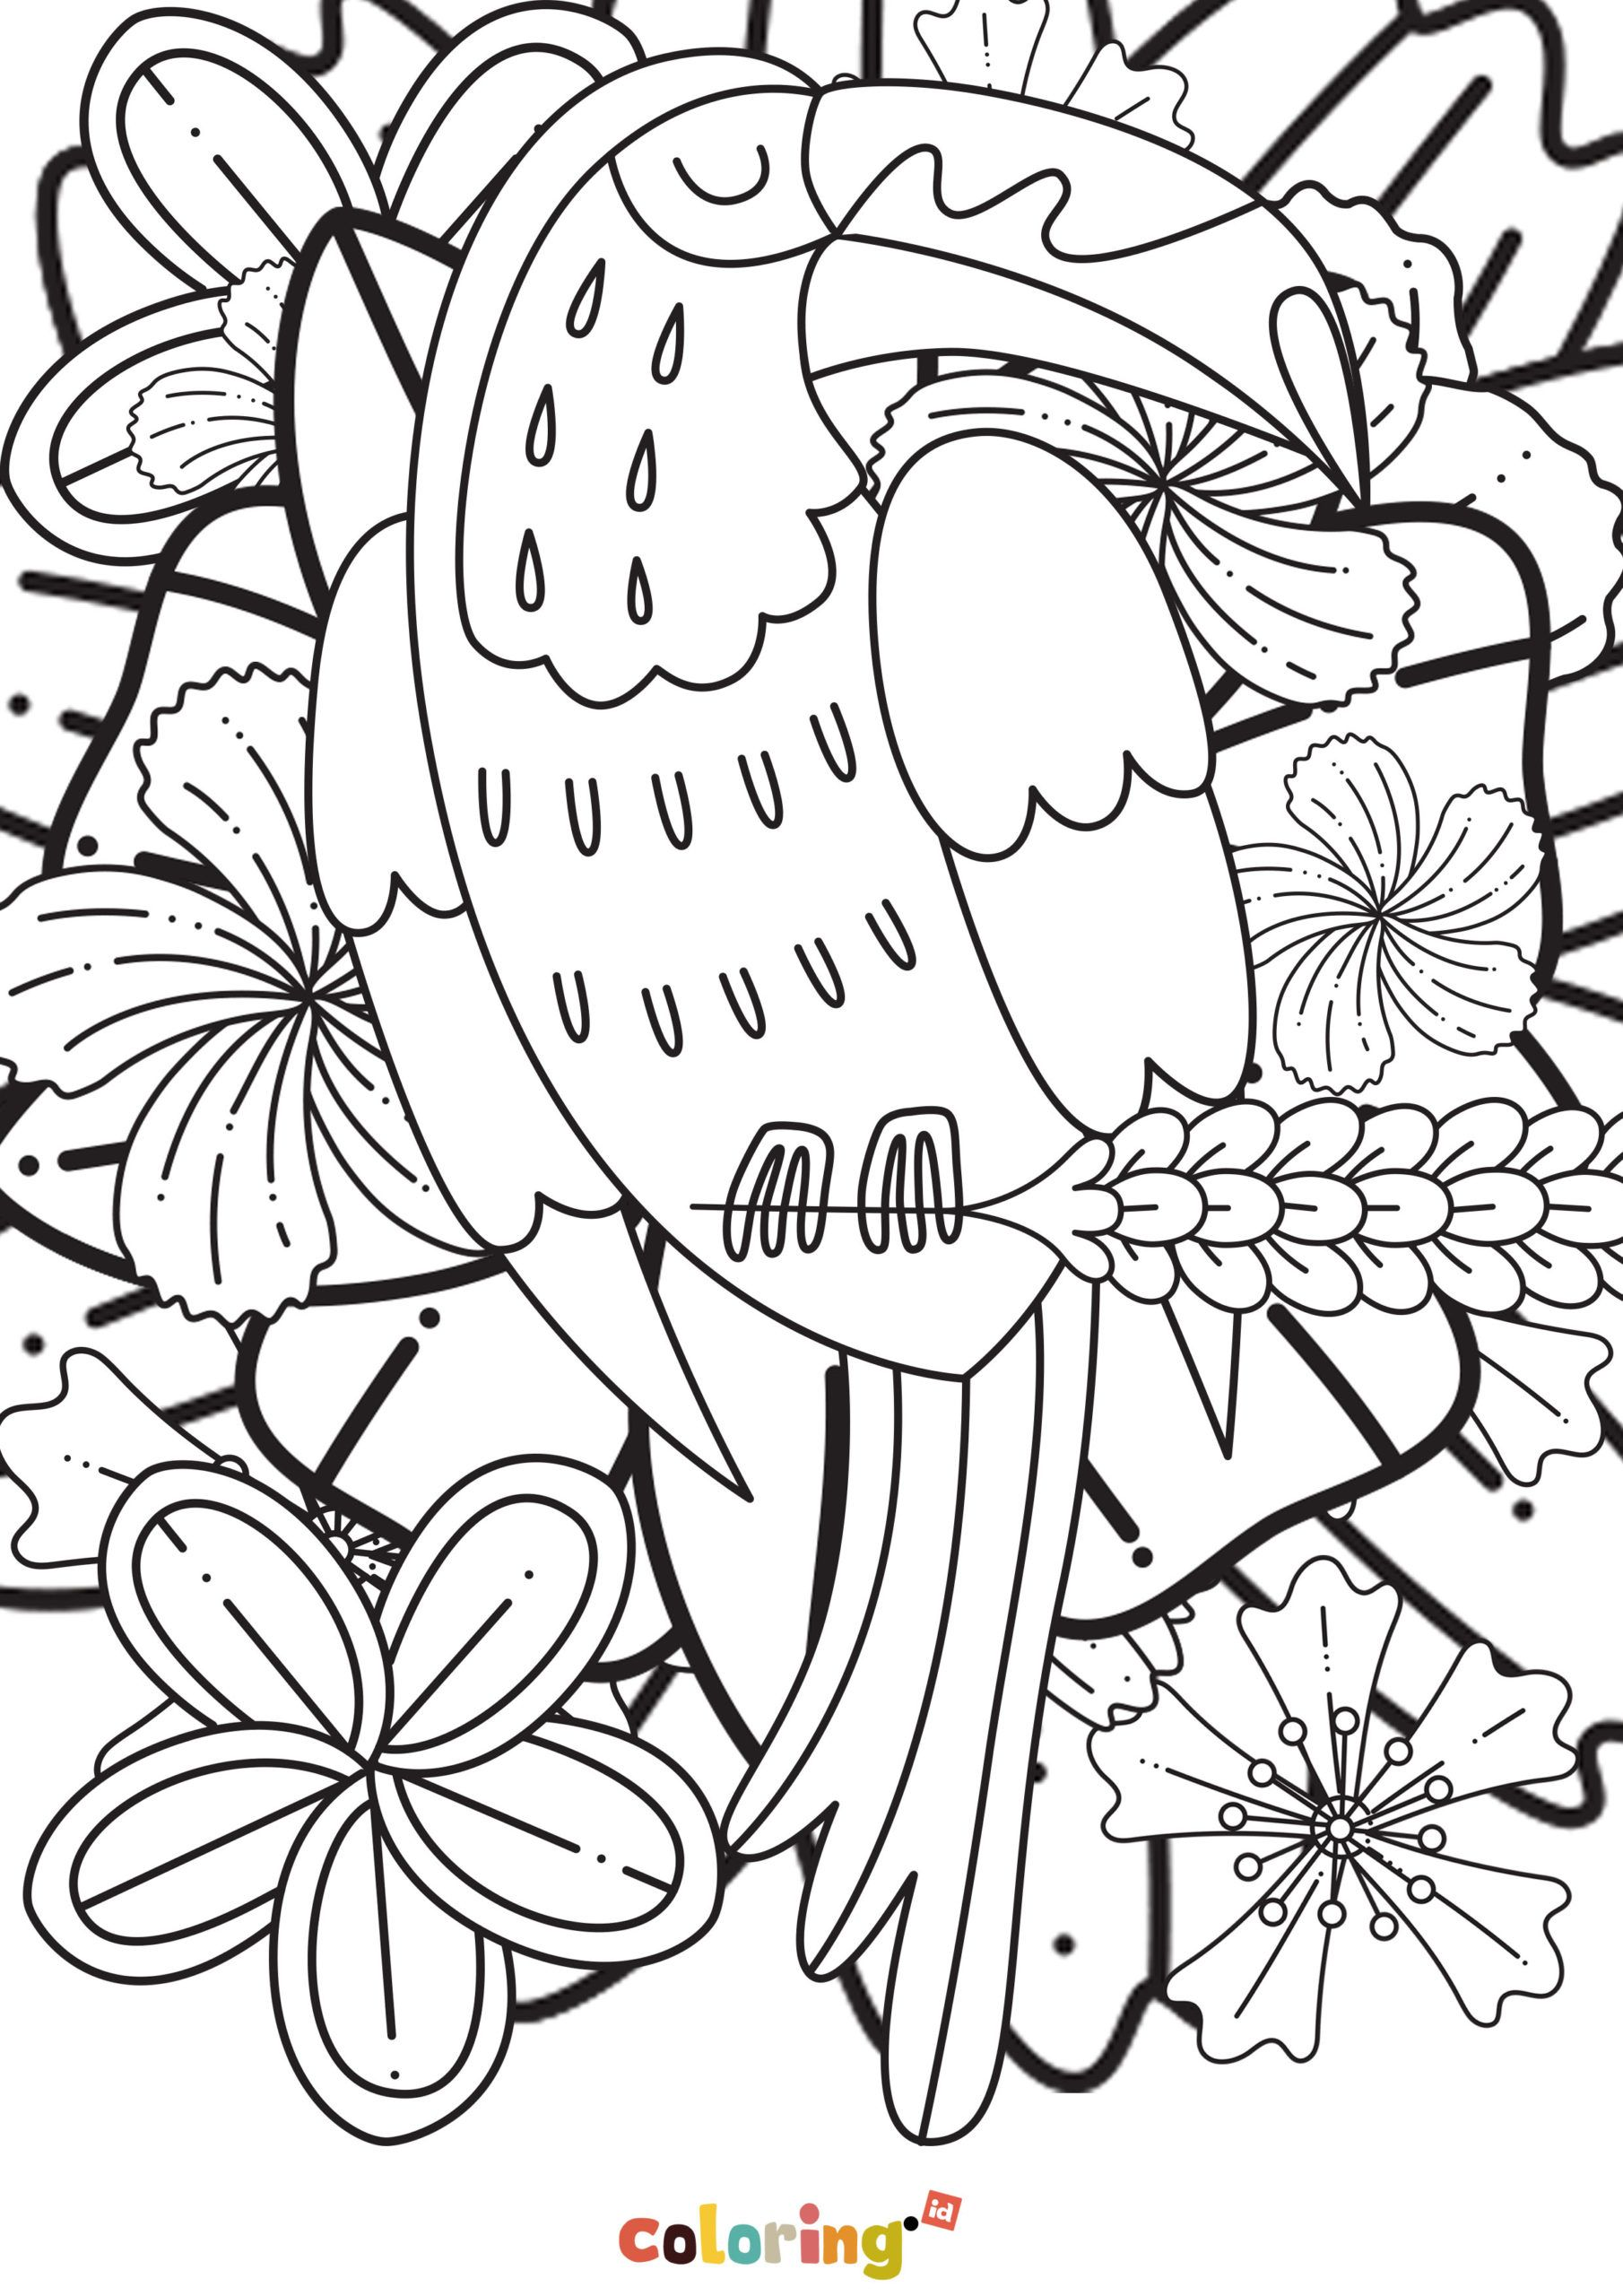 Free Printable Mandala Bird Coloring Page For Kids Free Printable Of Mandala Coloring Pages For All Bird Coloring Pages Mandala Coloring Pages Coloring Pages